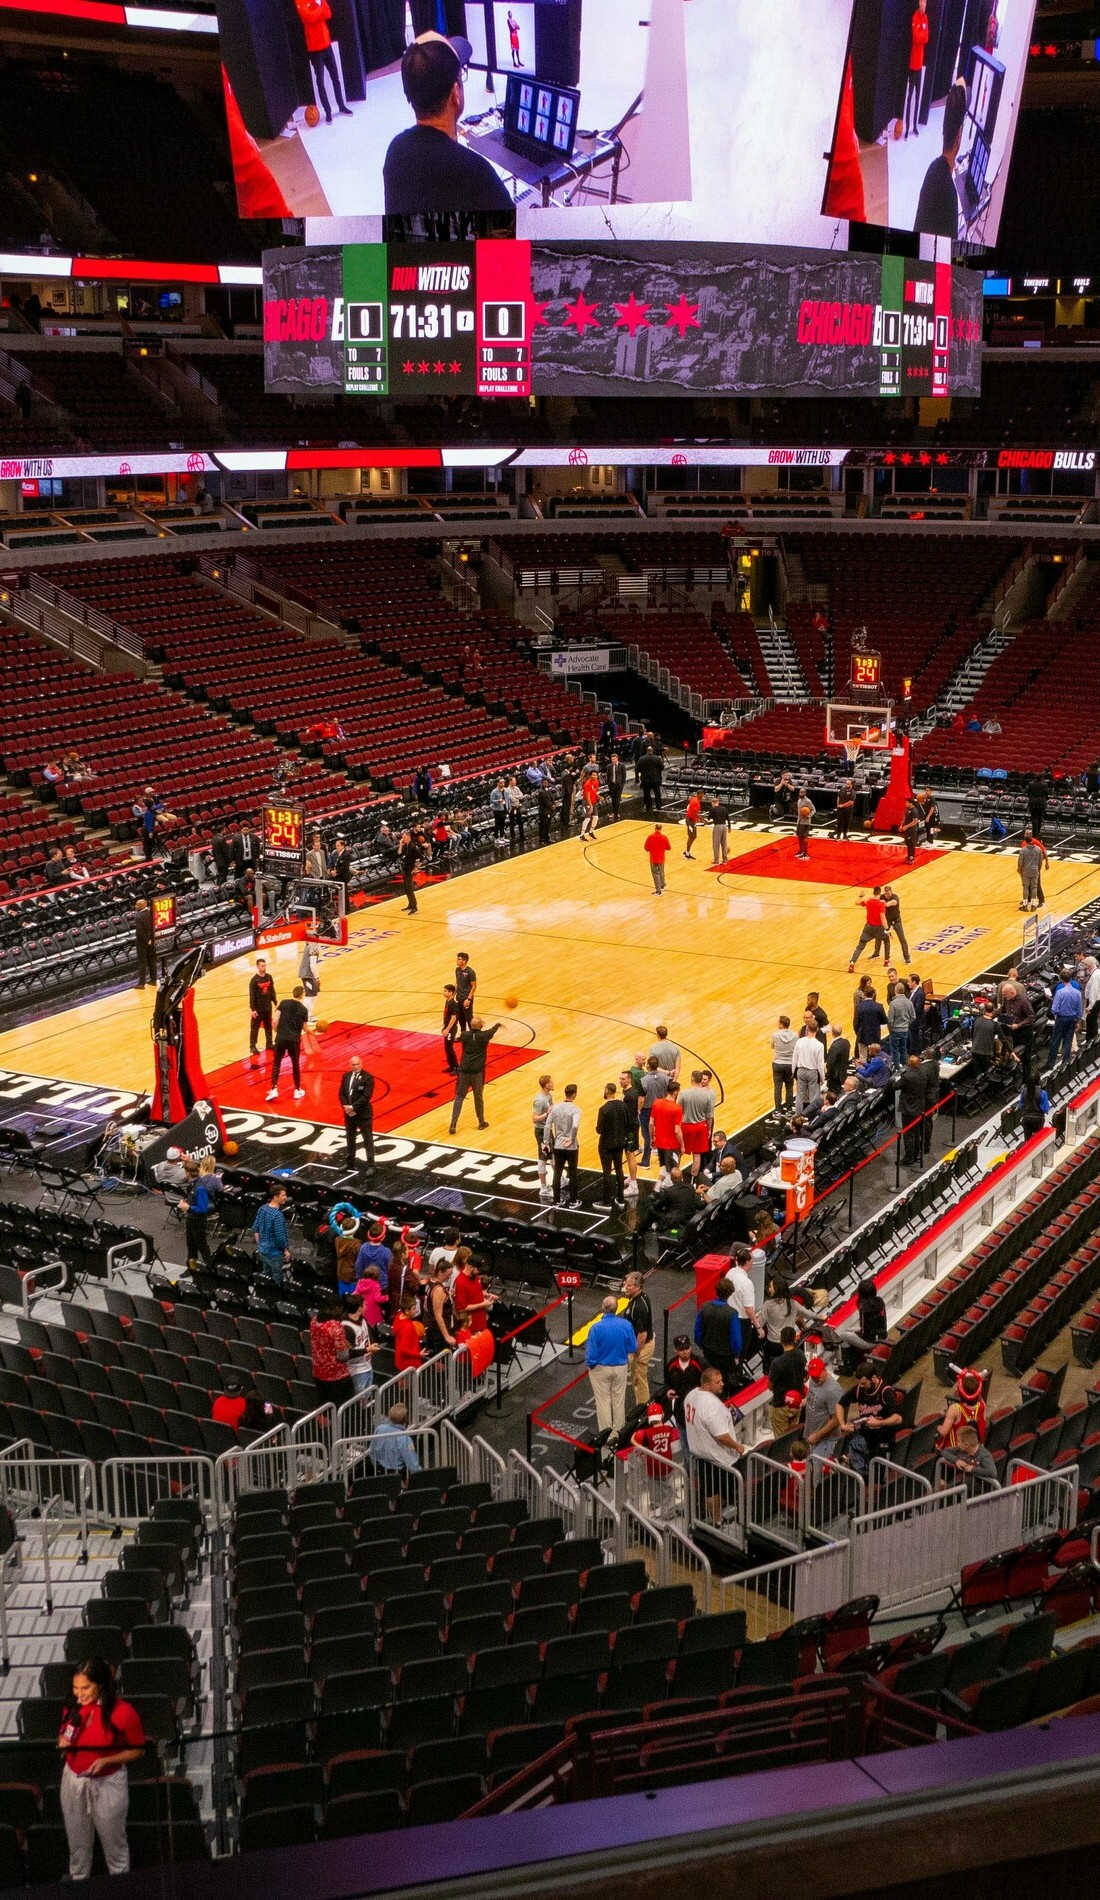 A Chicago Bulls live event